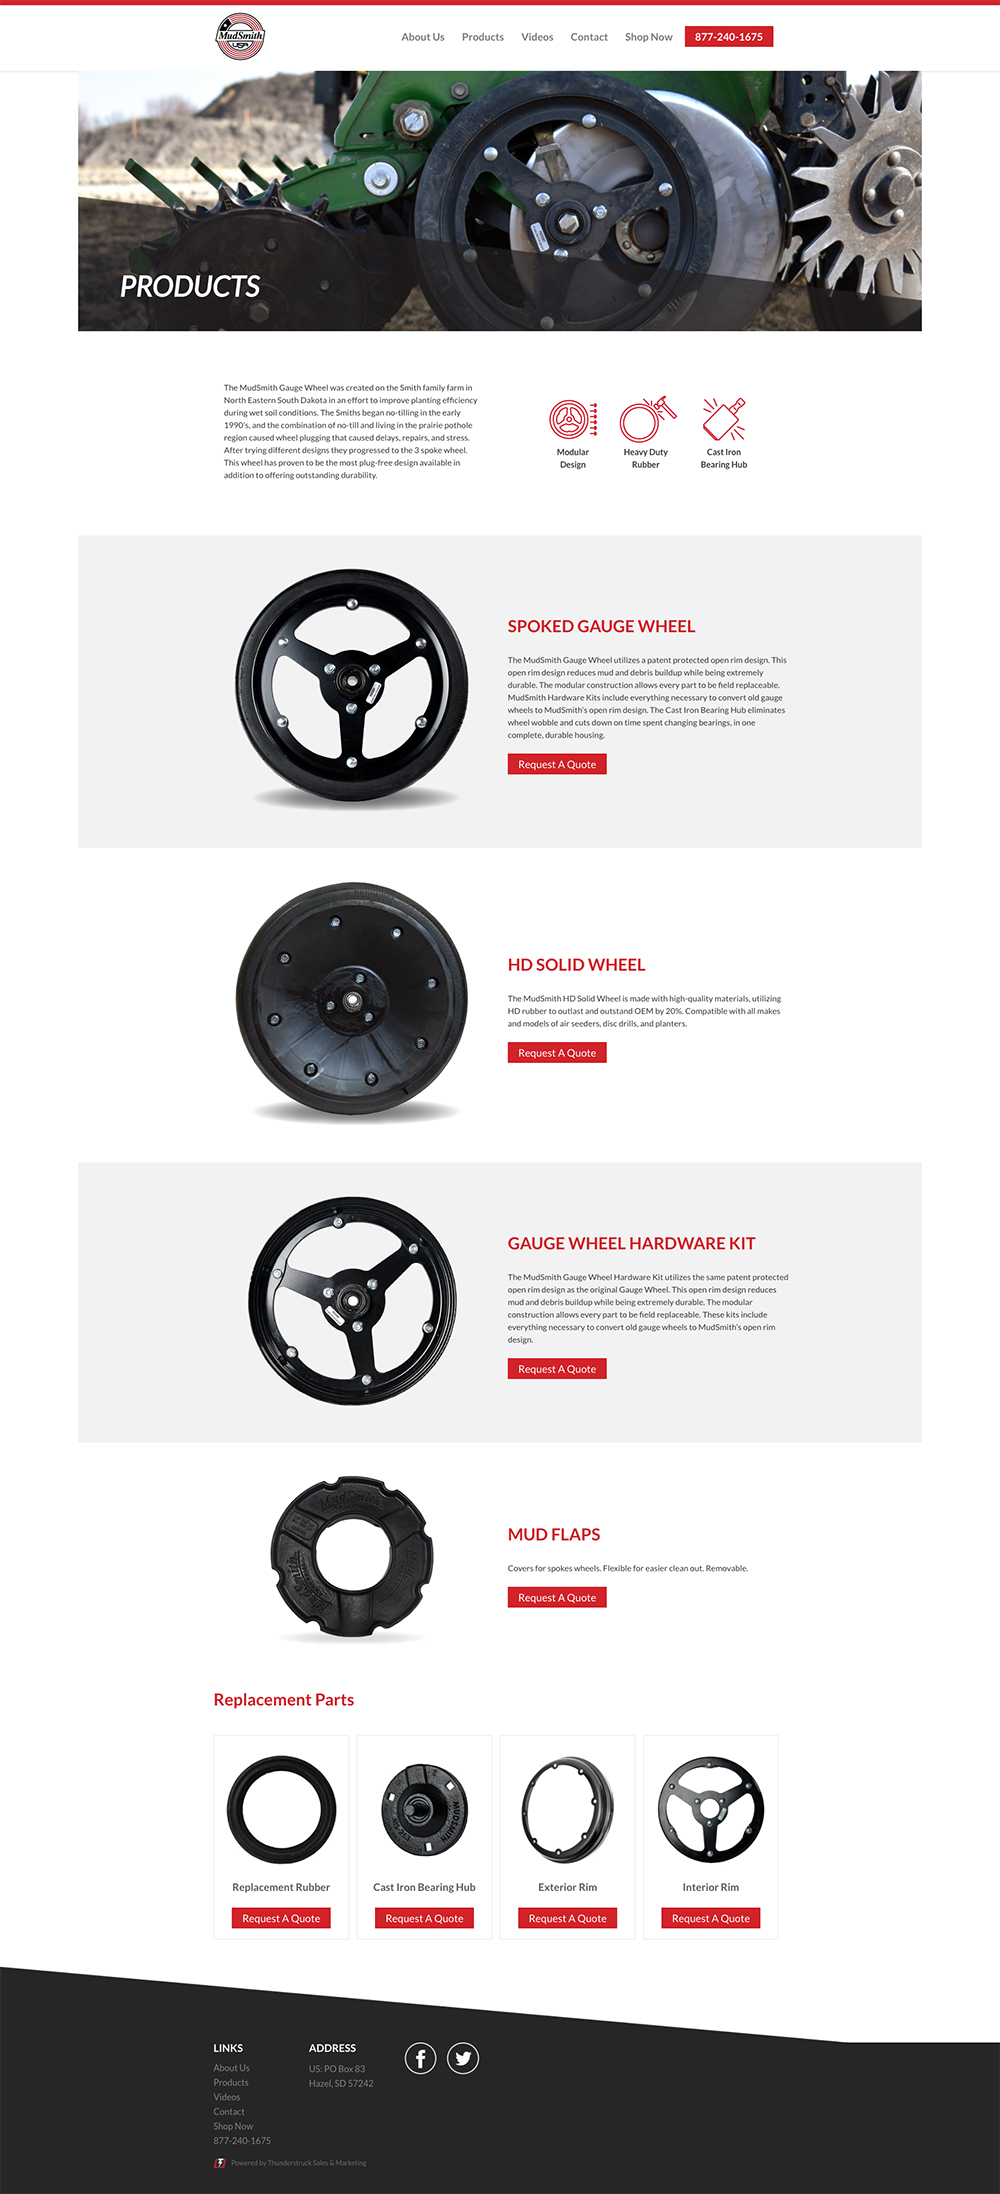 Our Product MudSmith Gauge Wheels